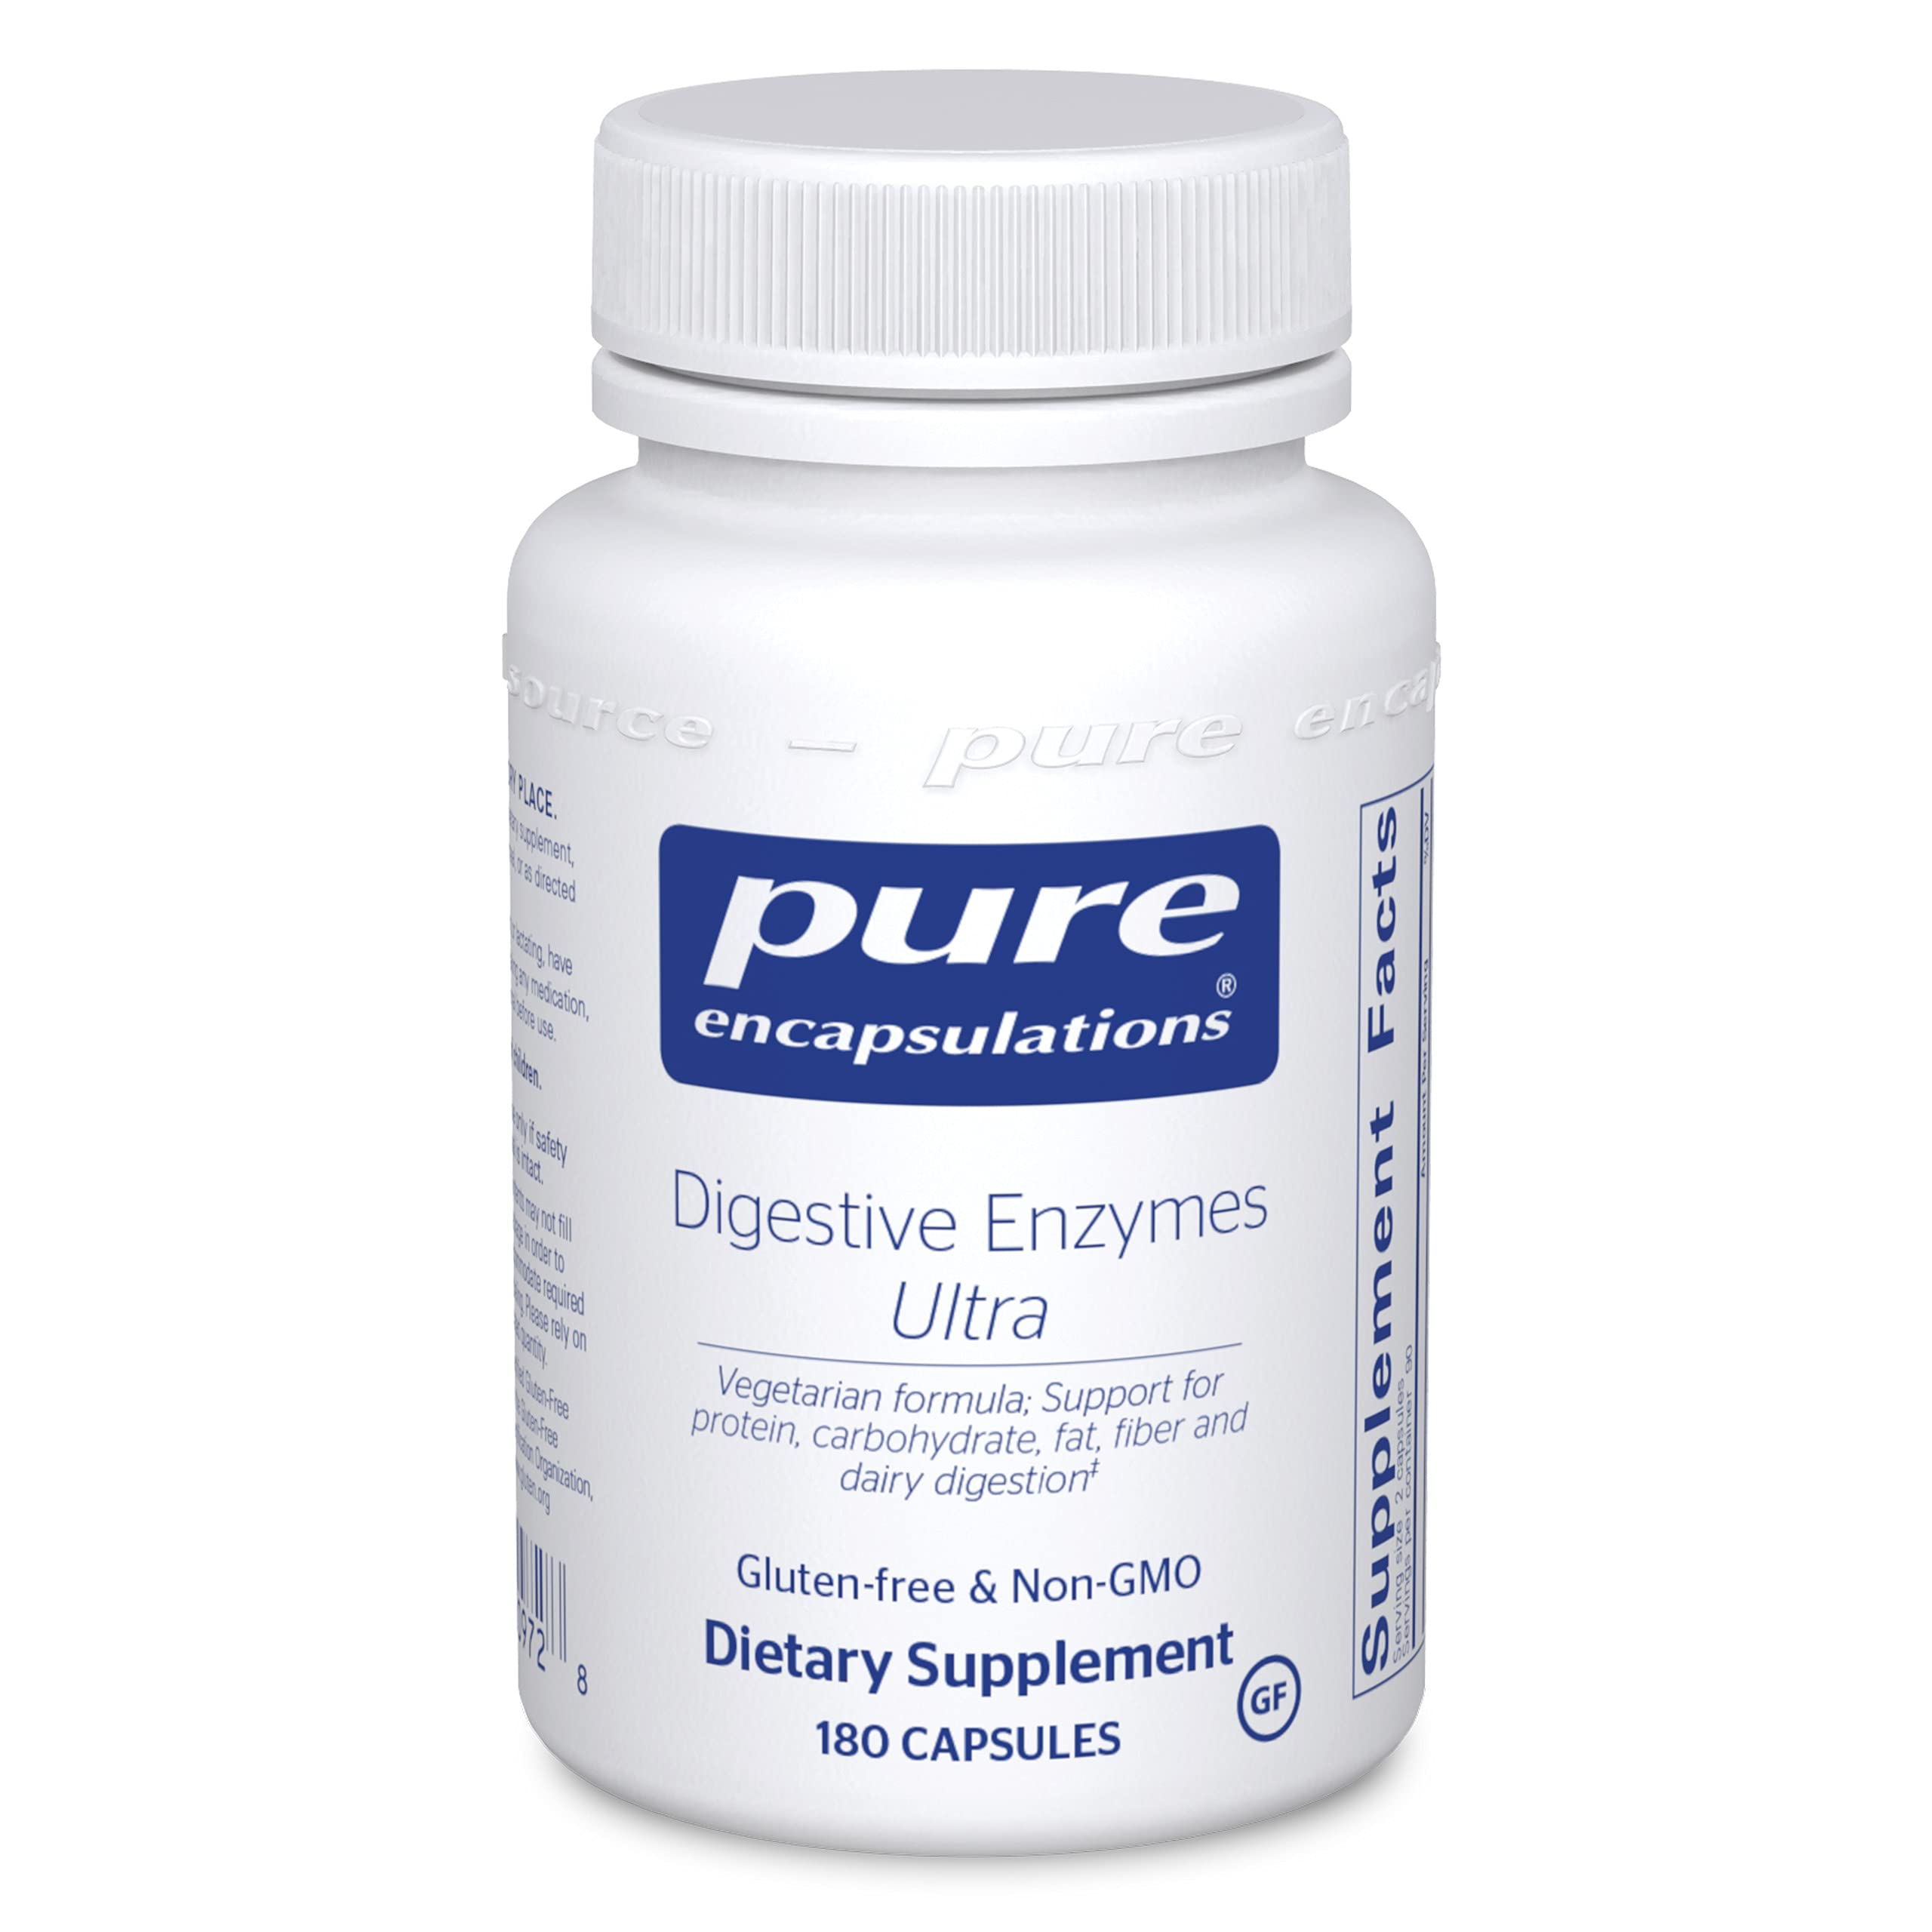 Pure Encapsulations Digestive Enzymes Ultra   Supplement to Aid in Breaking Down Fats, Proteins, and Carbohydrates for Digestion*   180 Capsules